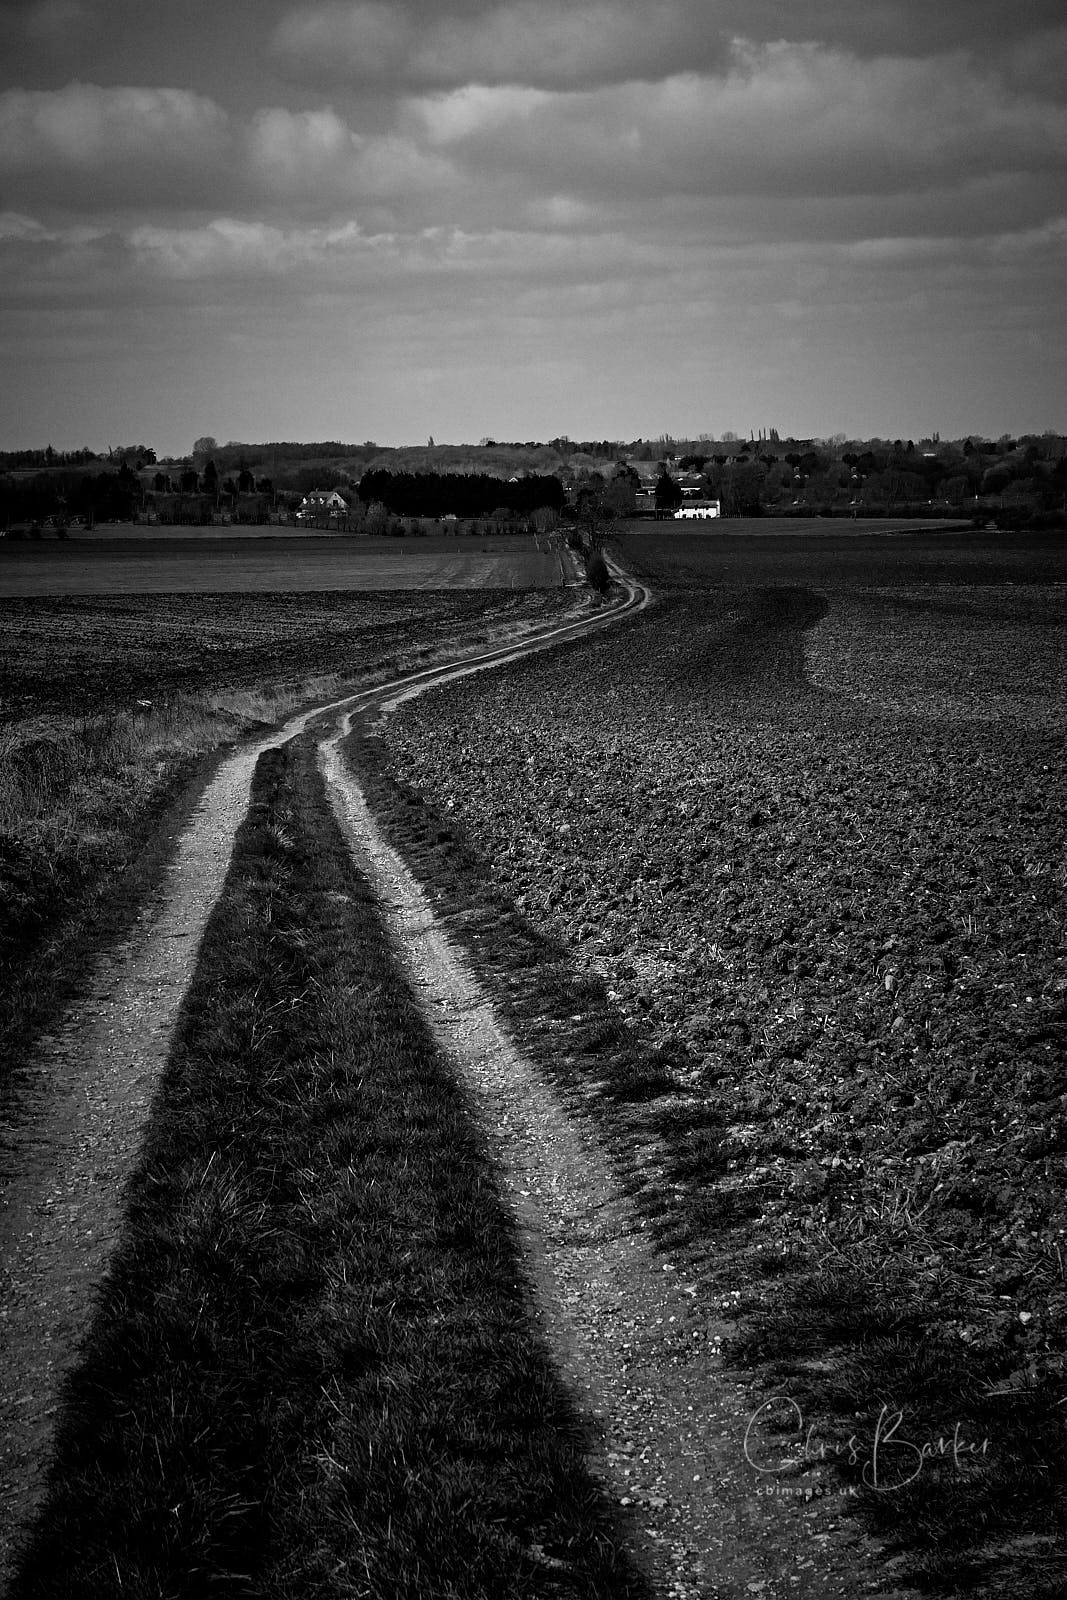 Monochrome photo of a track in a field towards a white house